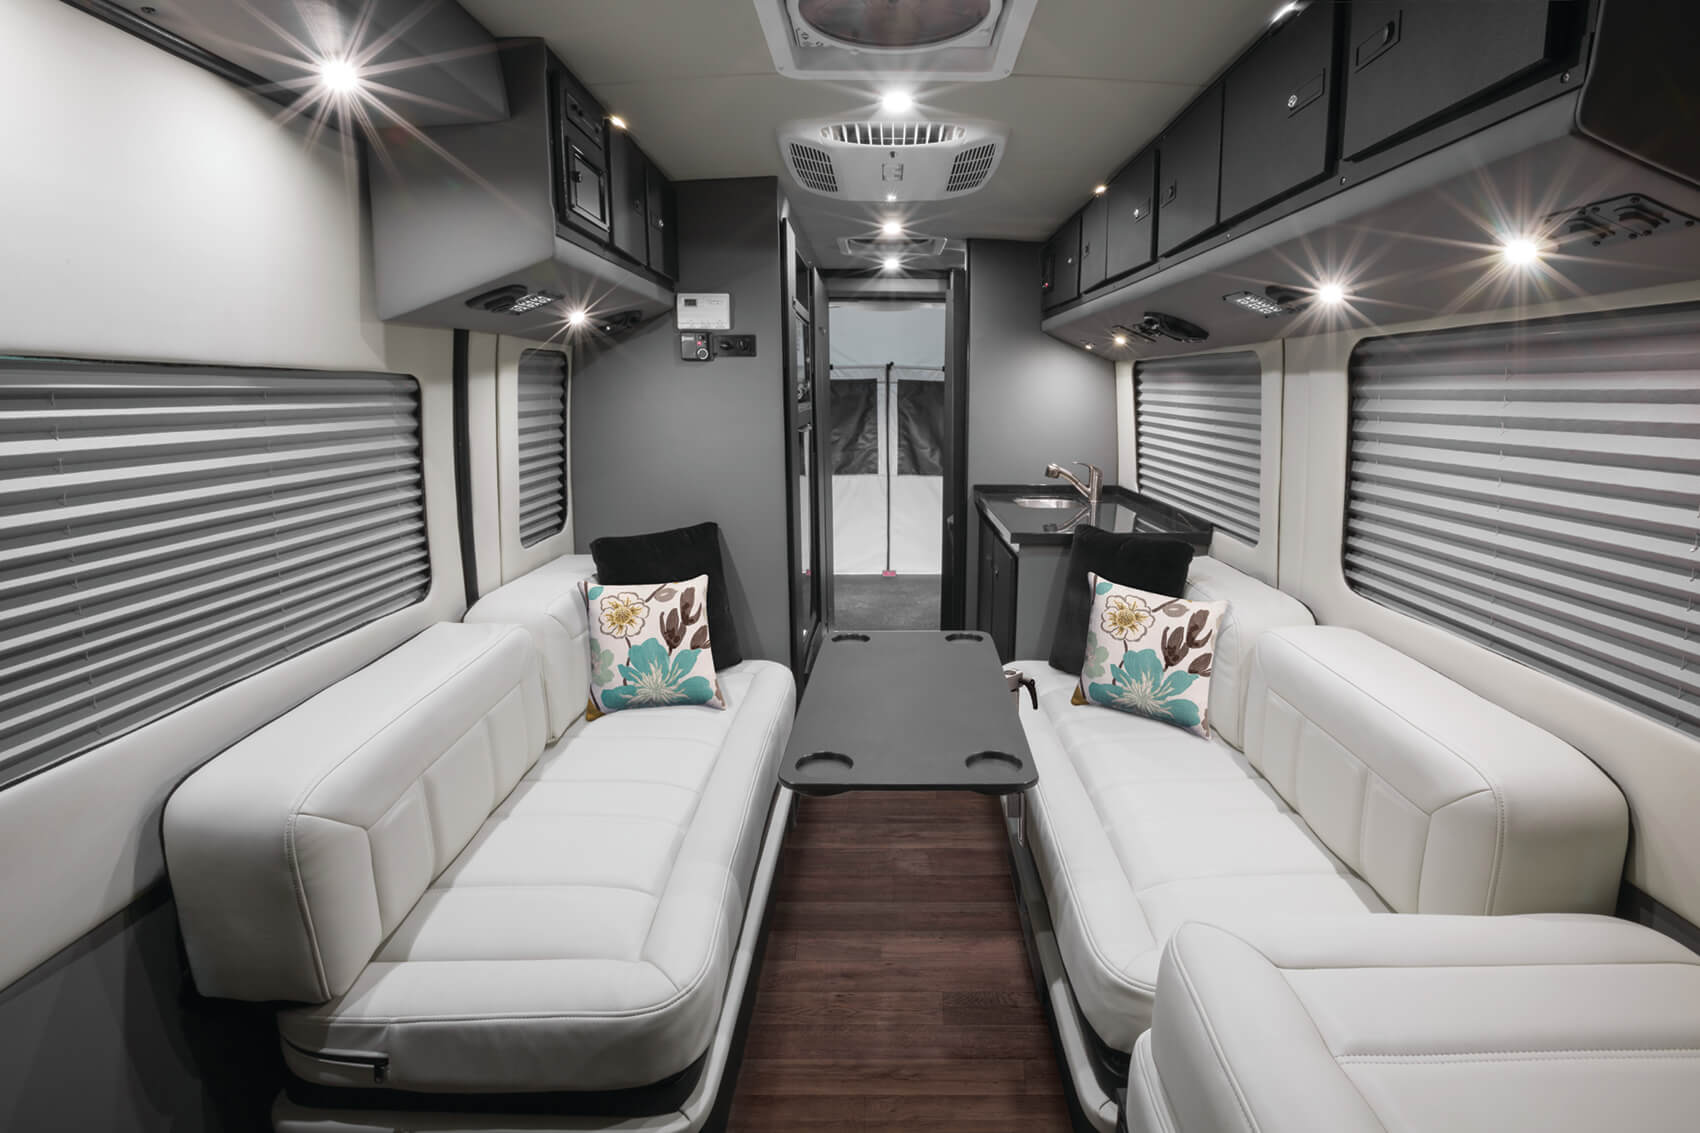 Styled interior of the Embassy Class B RV - @2019 Embassy / SVO Group Inc.